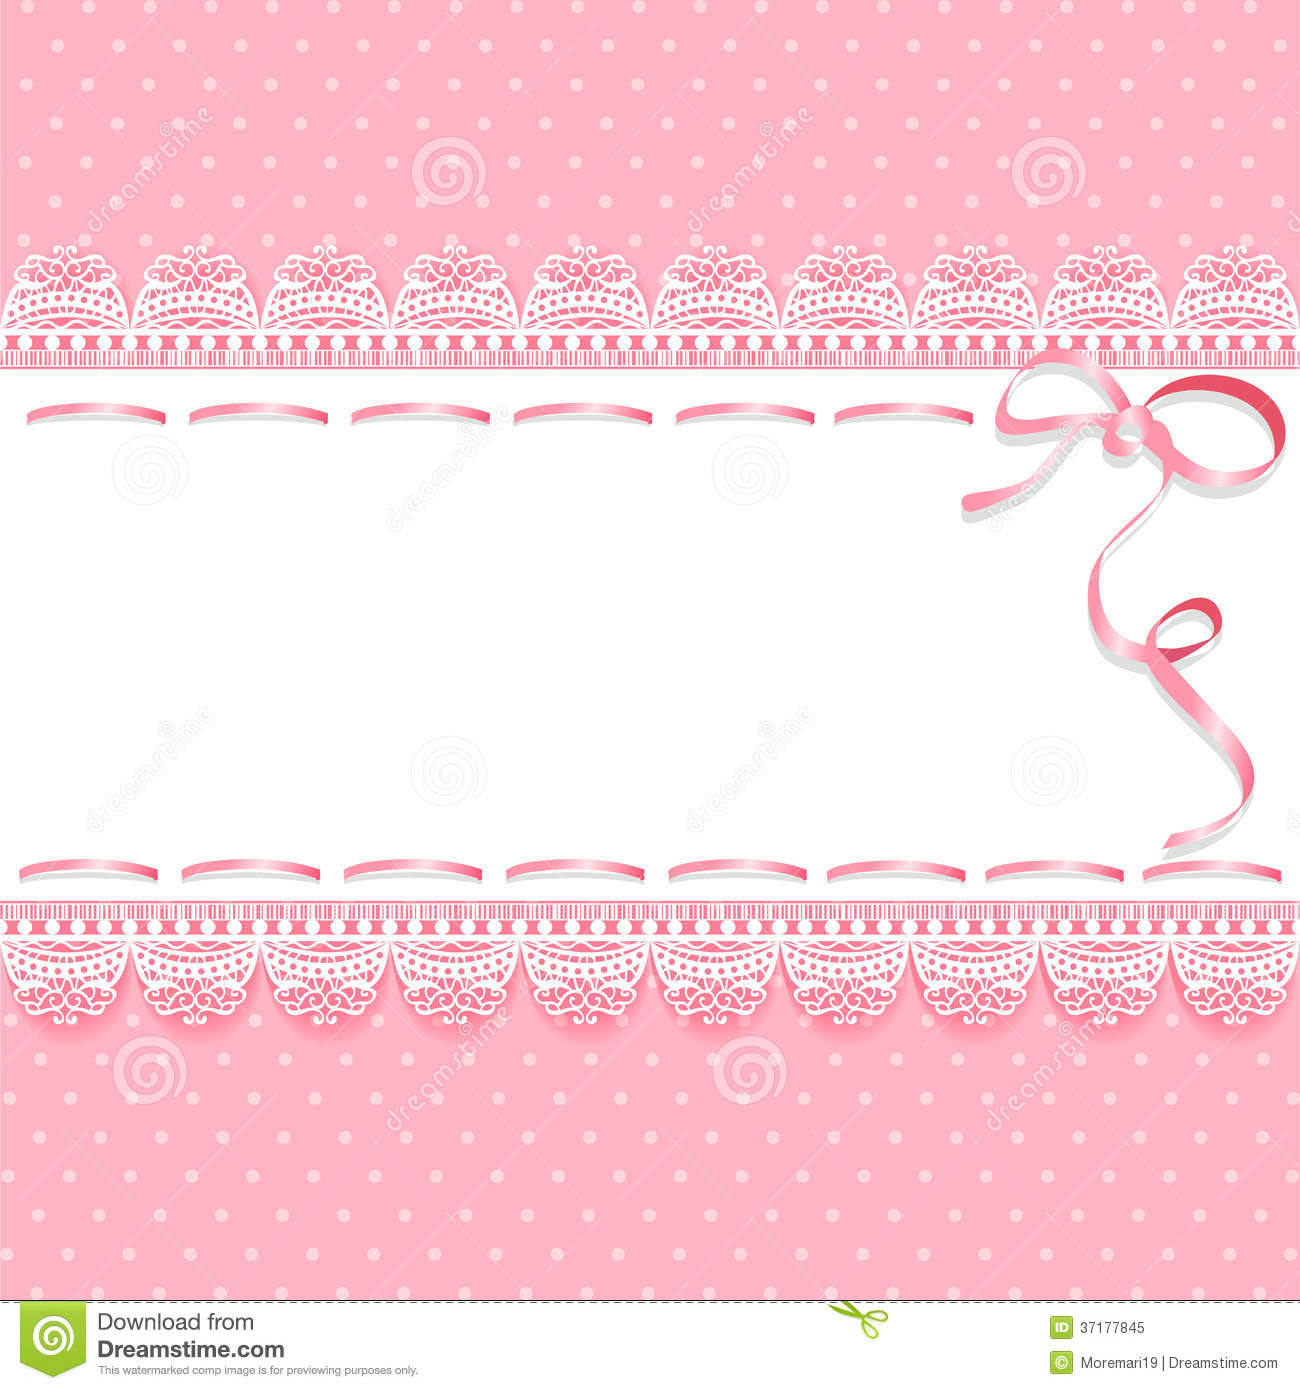 Breast Cancer 3d Wallpaper For Pc Fondo Del Rosa Del Cord 243 N Del Vintage Con La Cinta Foto De